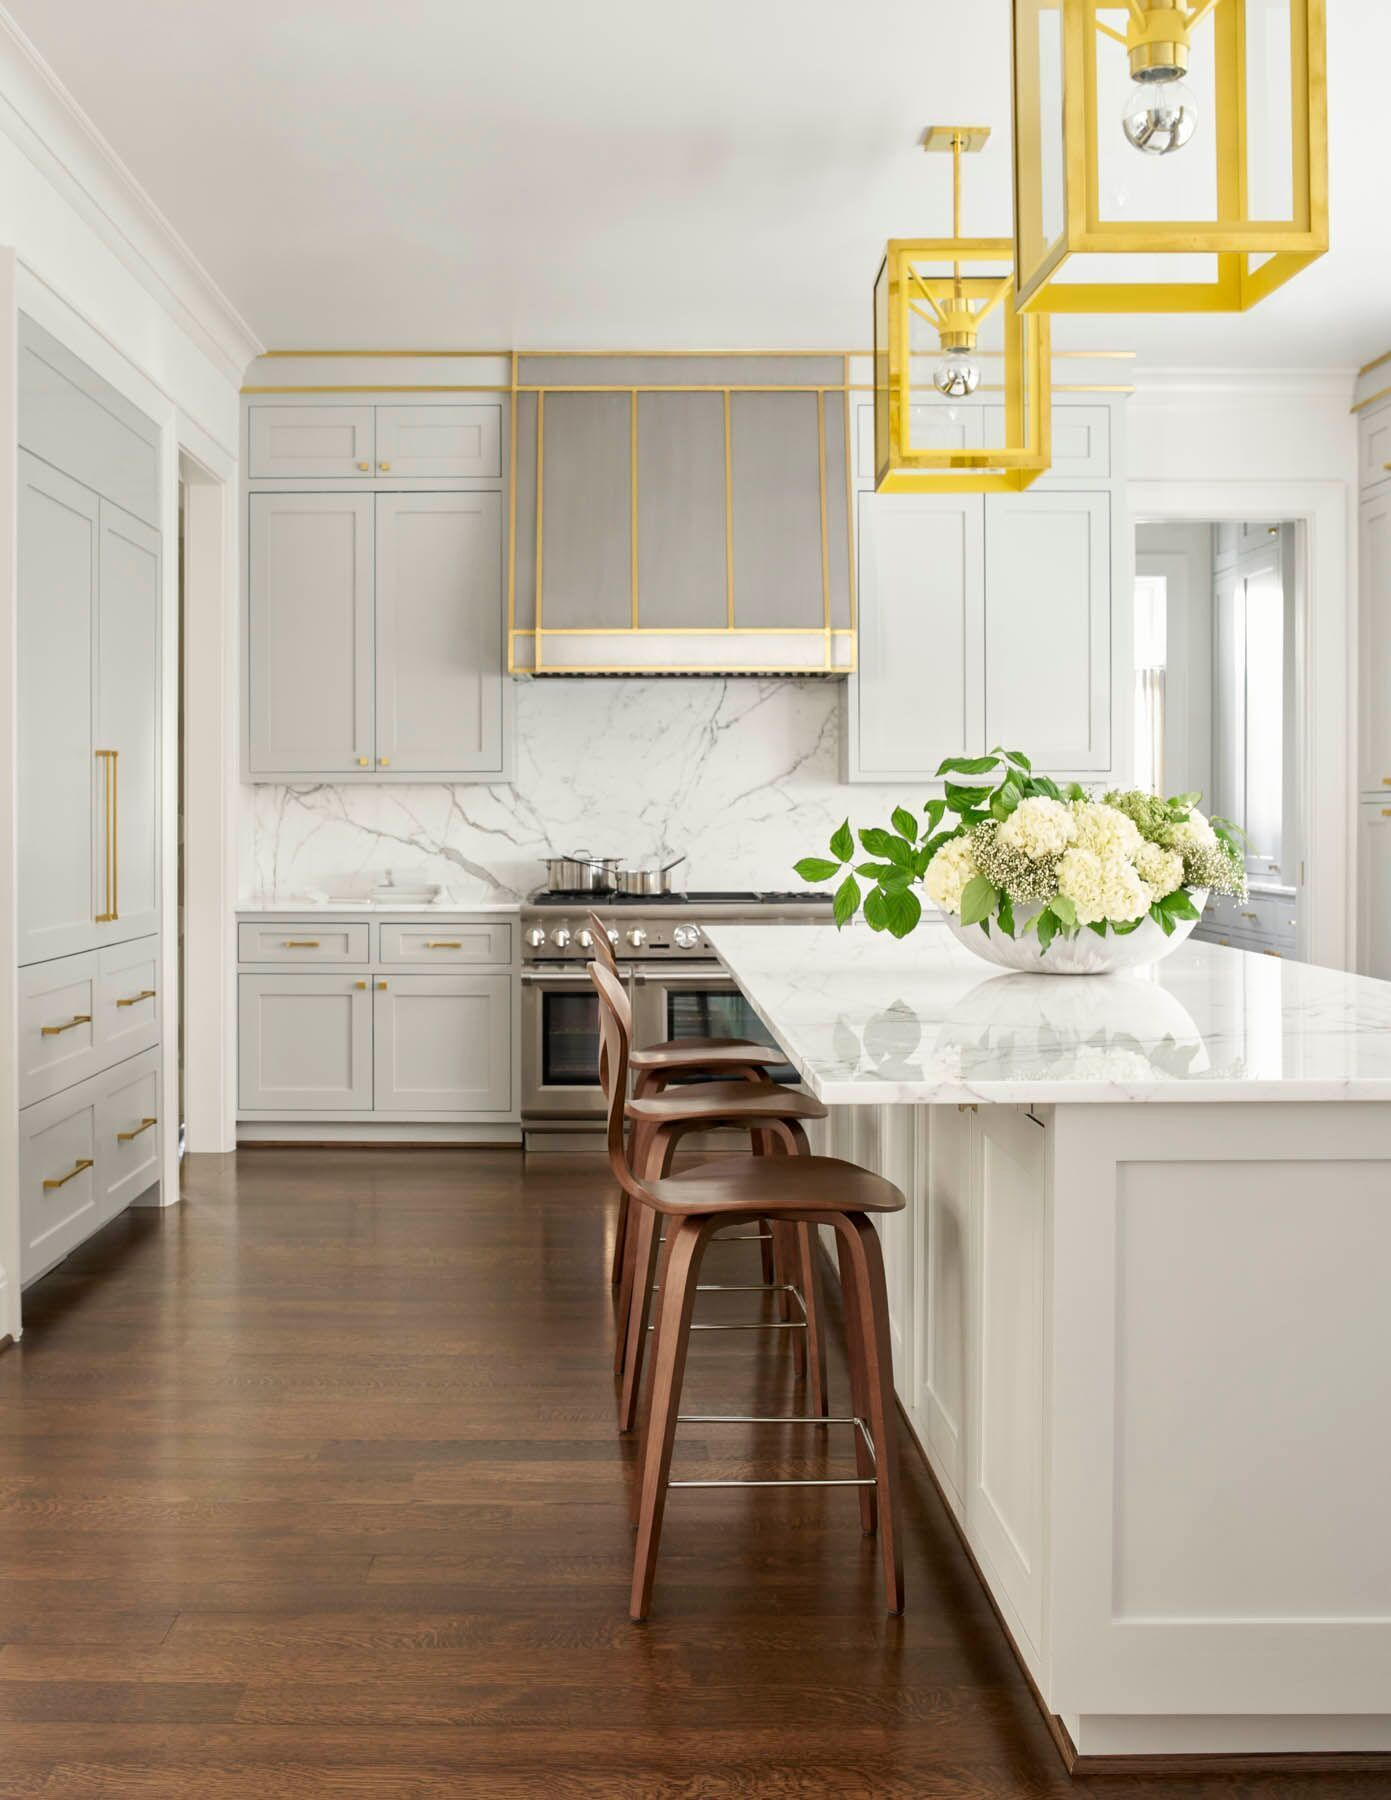 Simple And Impressive Tricks Colonial Kitchen Remodel David Smith Narrow Kitchen Remode Kitchen Remodel Small Galley Kitchen Renovation Kitchen Remodel Layout